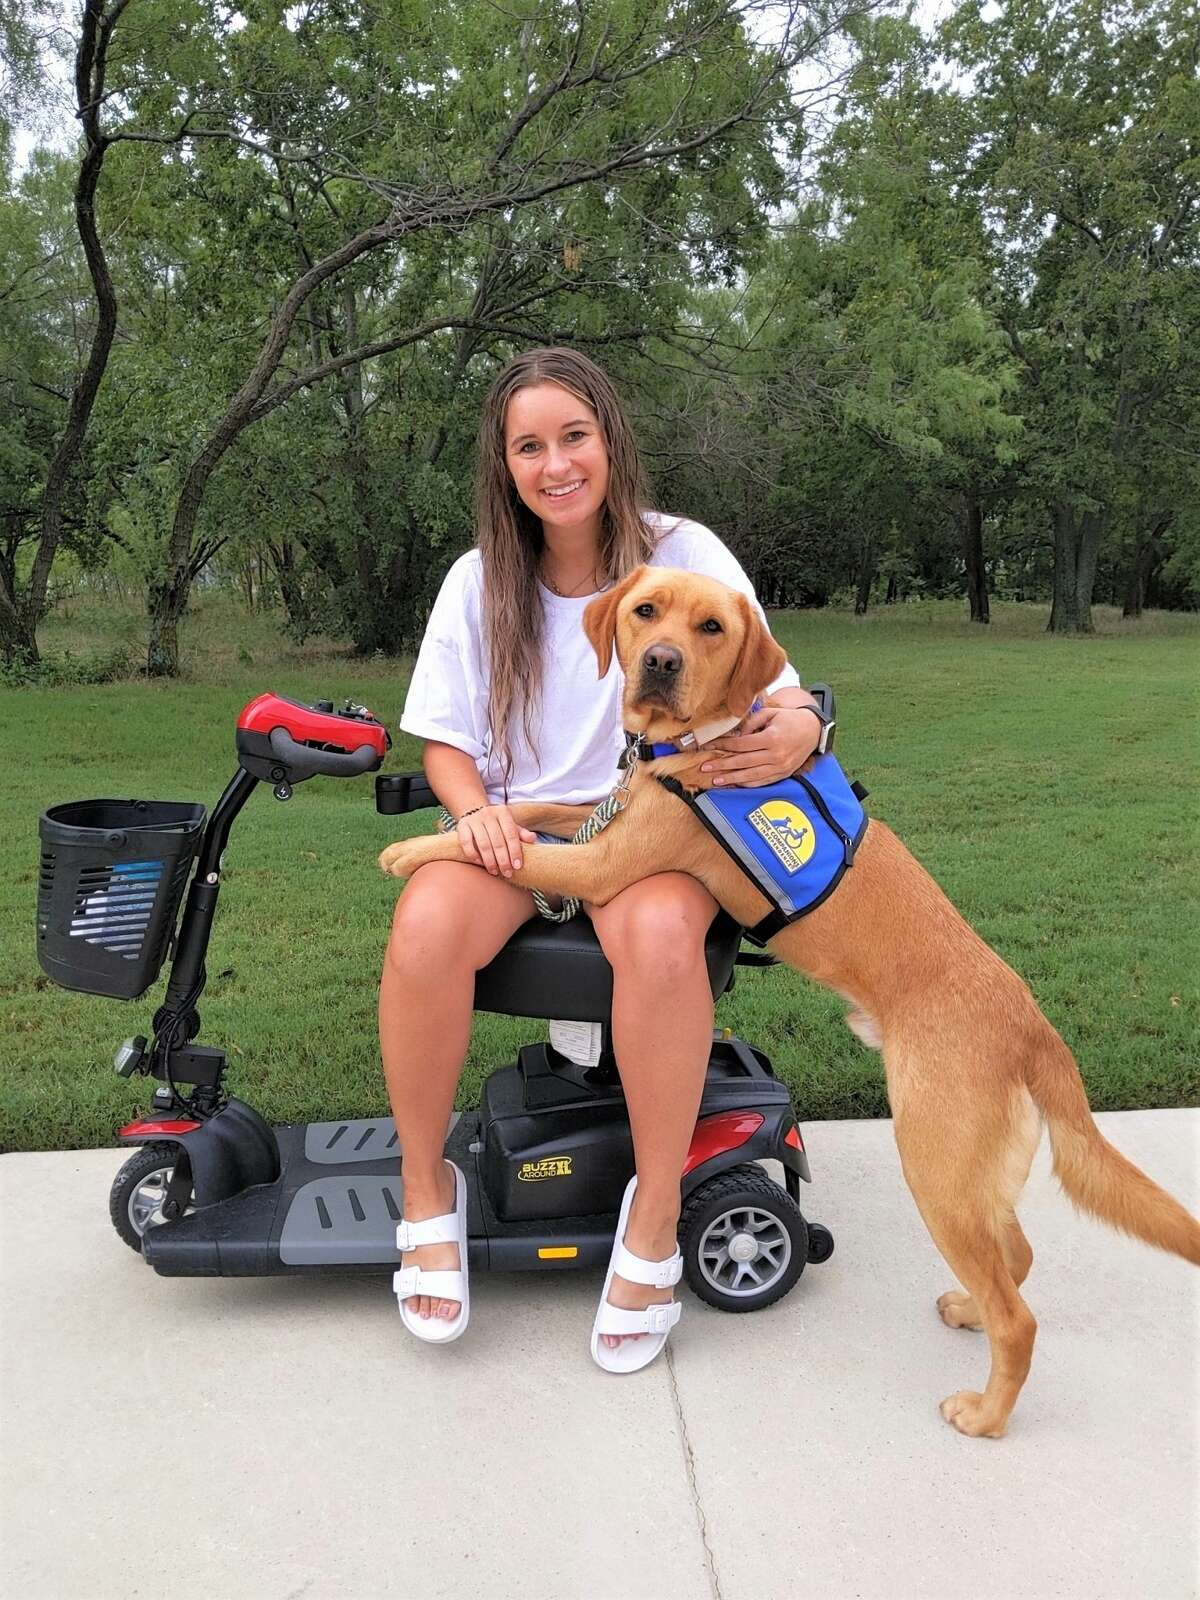 The grants that were awarded in early June included Canine Companions for Independence.